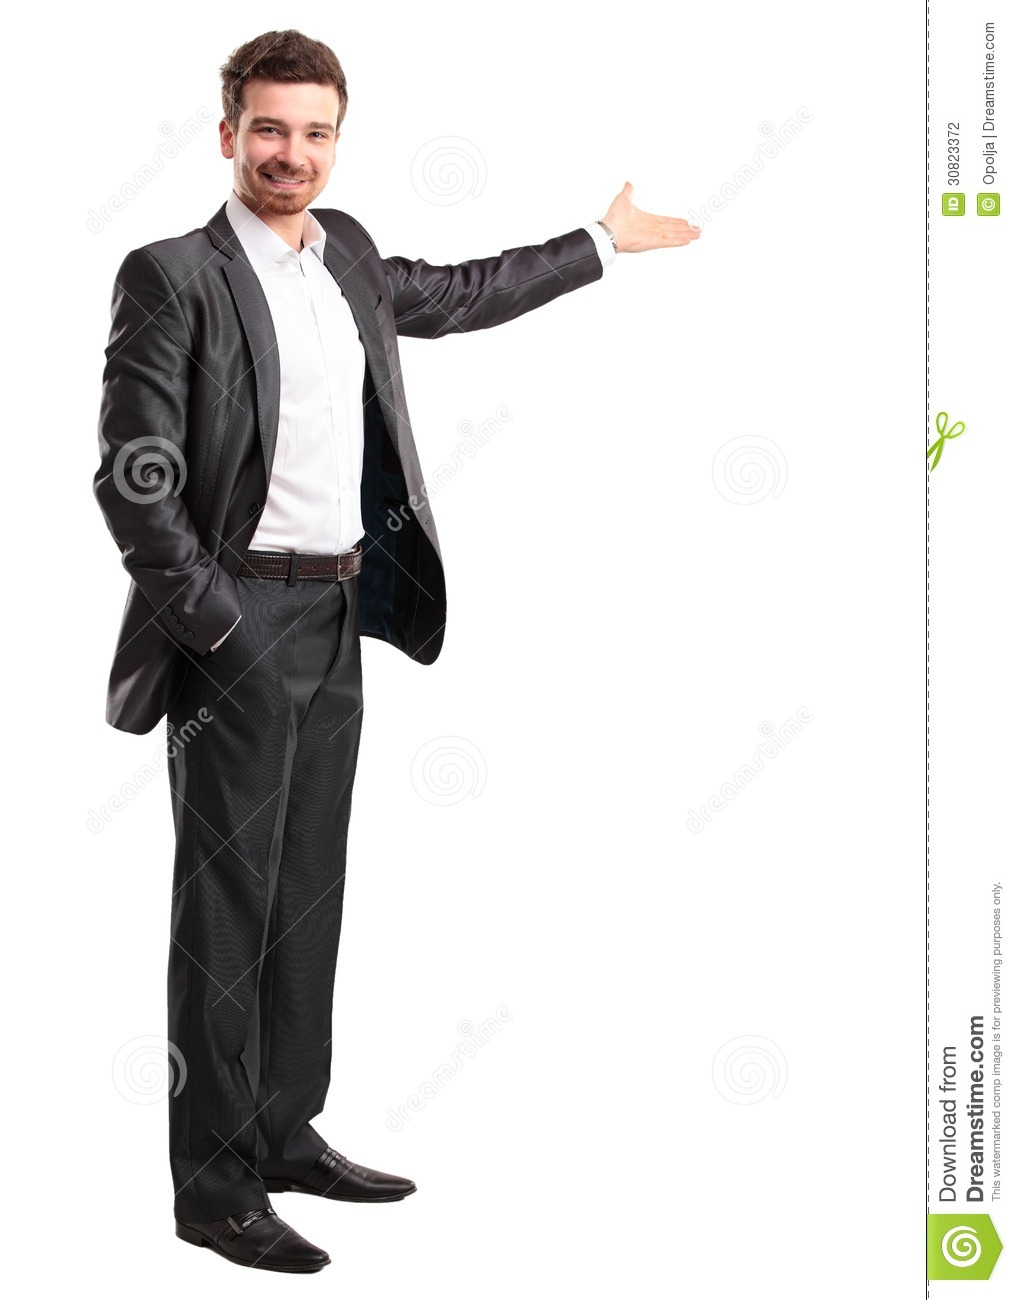 happy-business-man-presenting-showing-copy-space-your-text-isolated-white-background-30823372.jpg